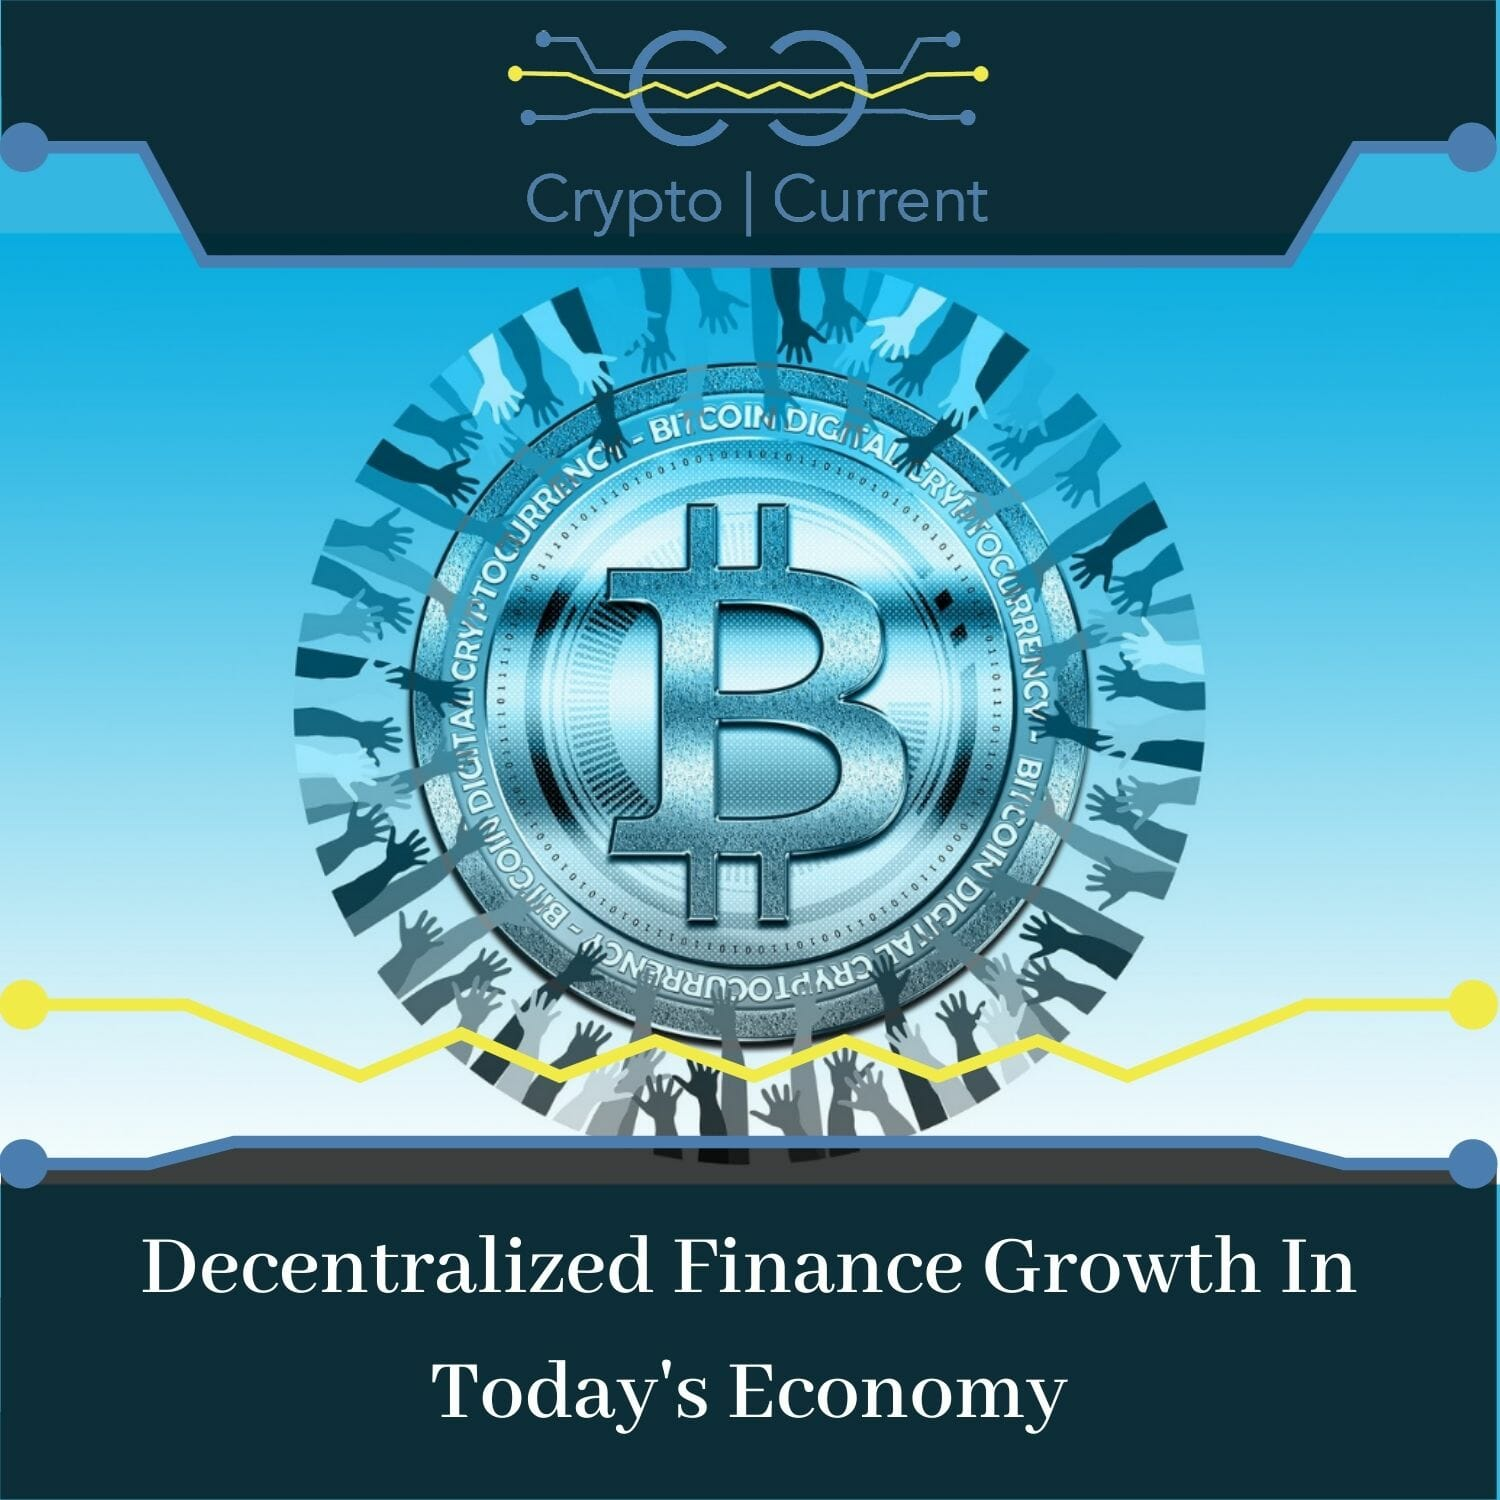 Decentralized Finance Growth In Today's Economy